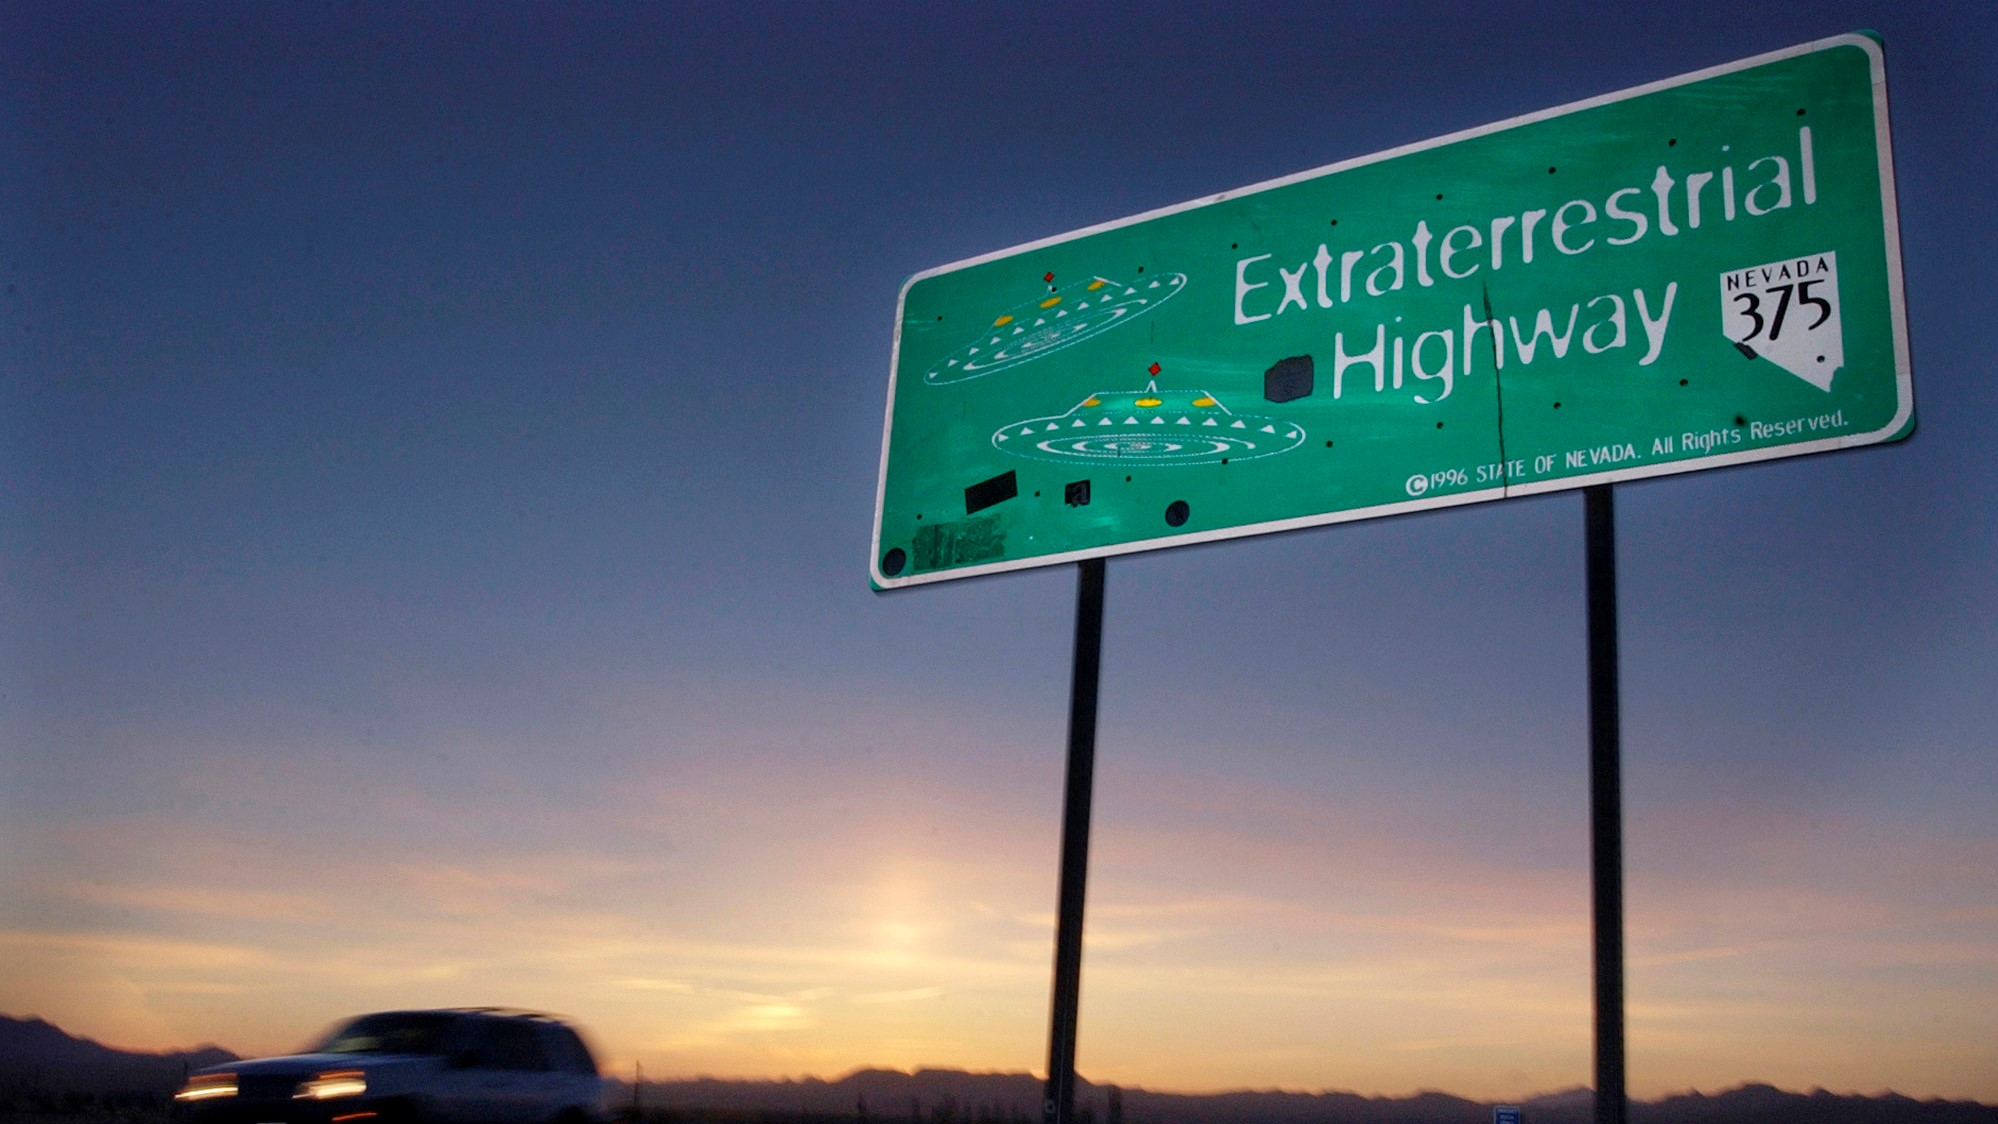 """In this April 10, 2002, file photo, a vehicle moves along the Extraterrestrial Highway near Rachel, Nev., the closest town to Area 51. The U.S. Air Force has warned people against participating in an internet joke suggesting a large crowd of people """"storm Area 51,"""" the top-secret Cold War test site in the Nevada desert. (AP Photo/Laura Rauch, File)"""